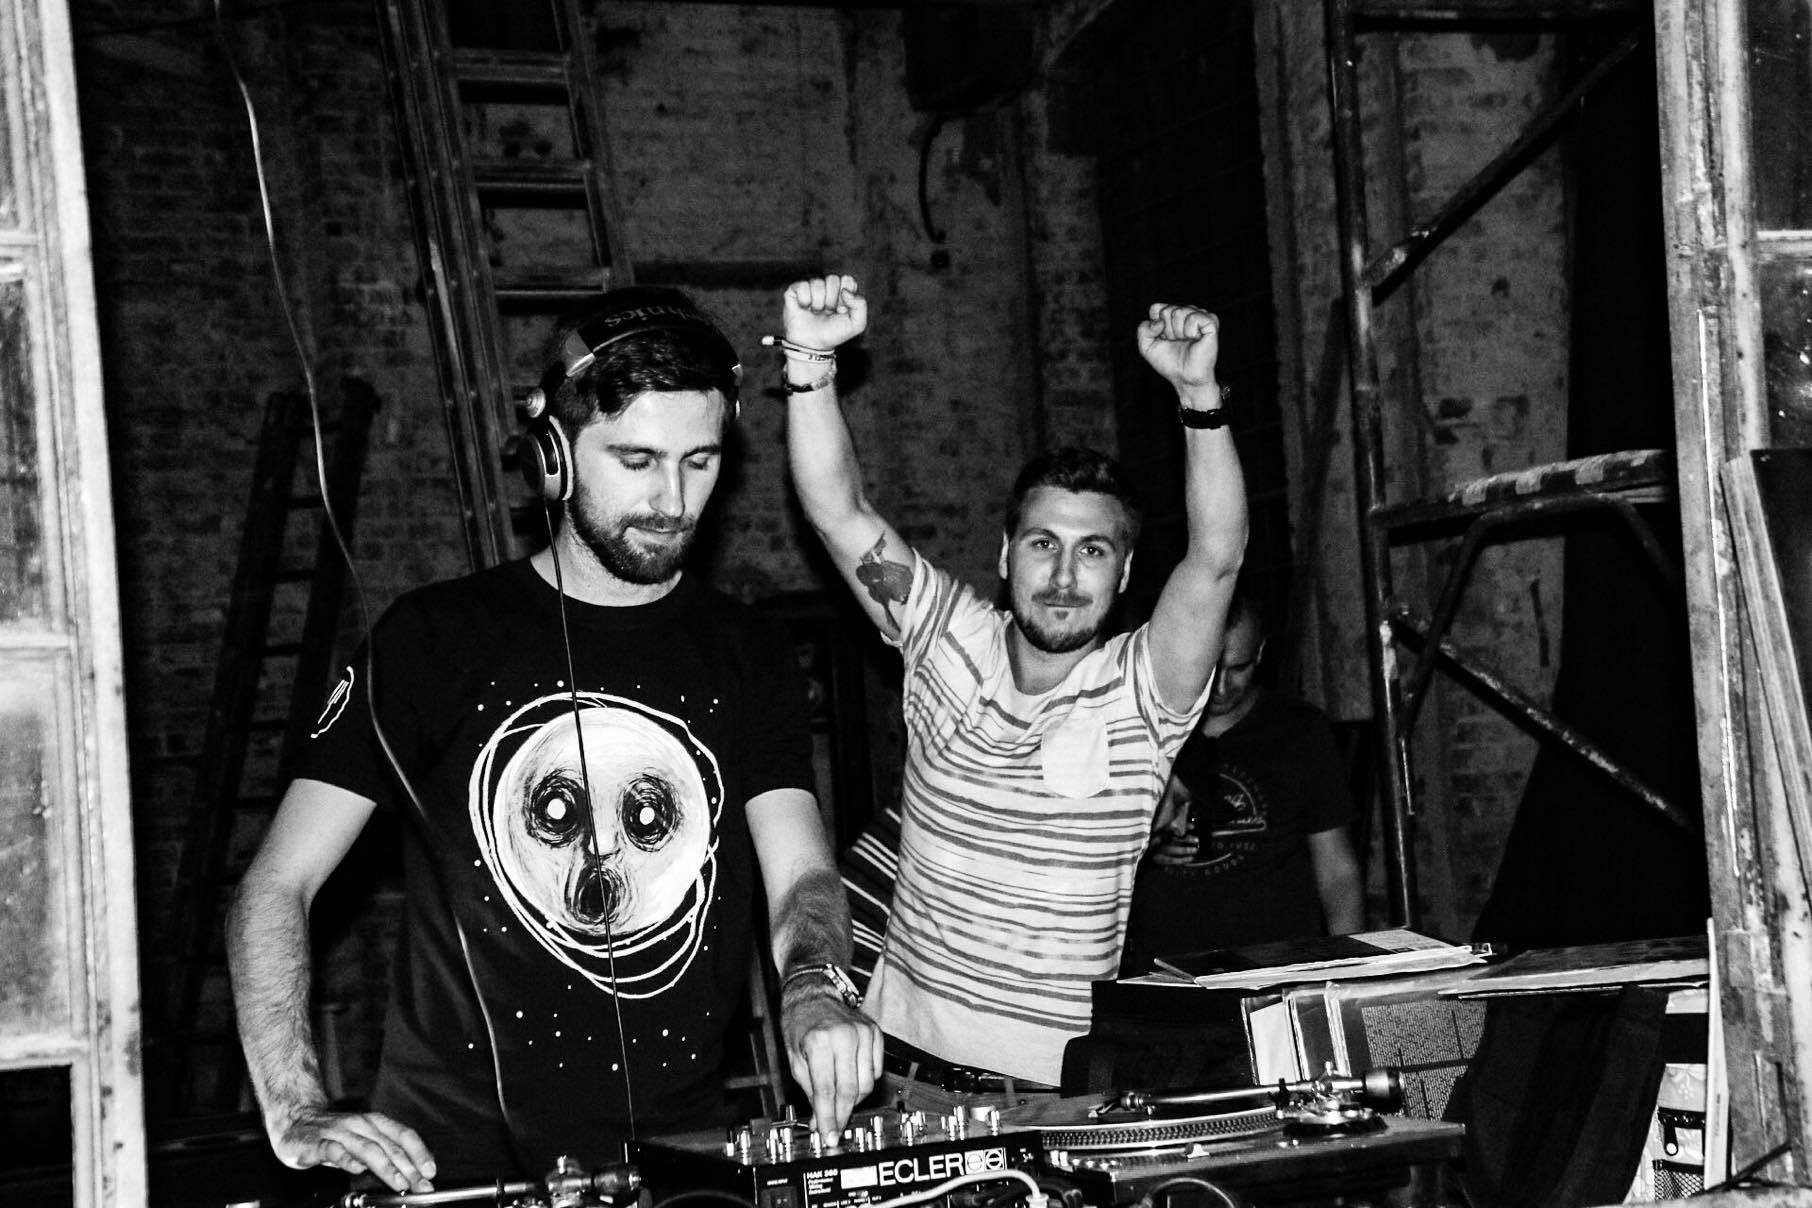 Live Set 008 with Puiu & UFe (Expirat, Bucharest, Sep 2016)